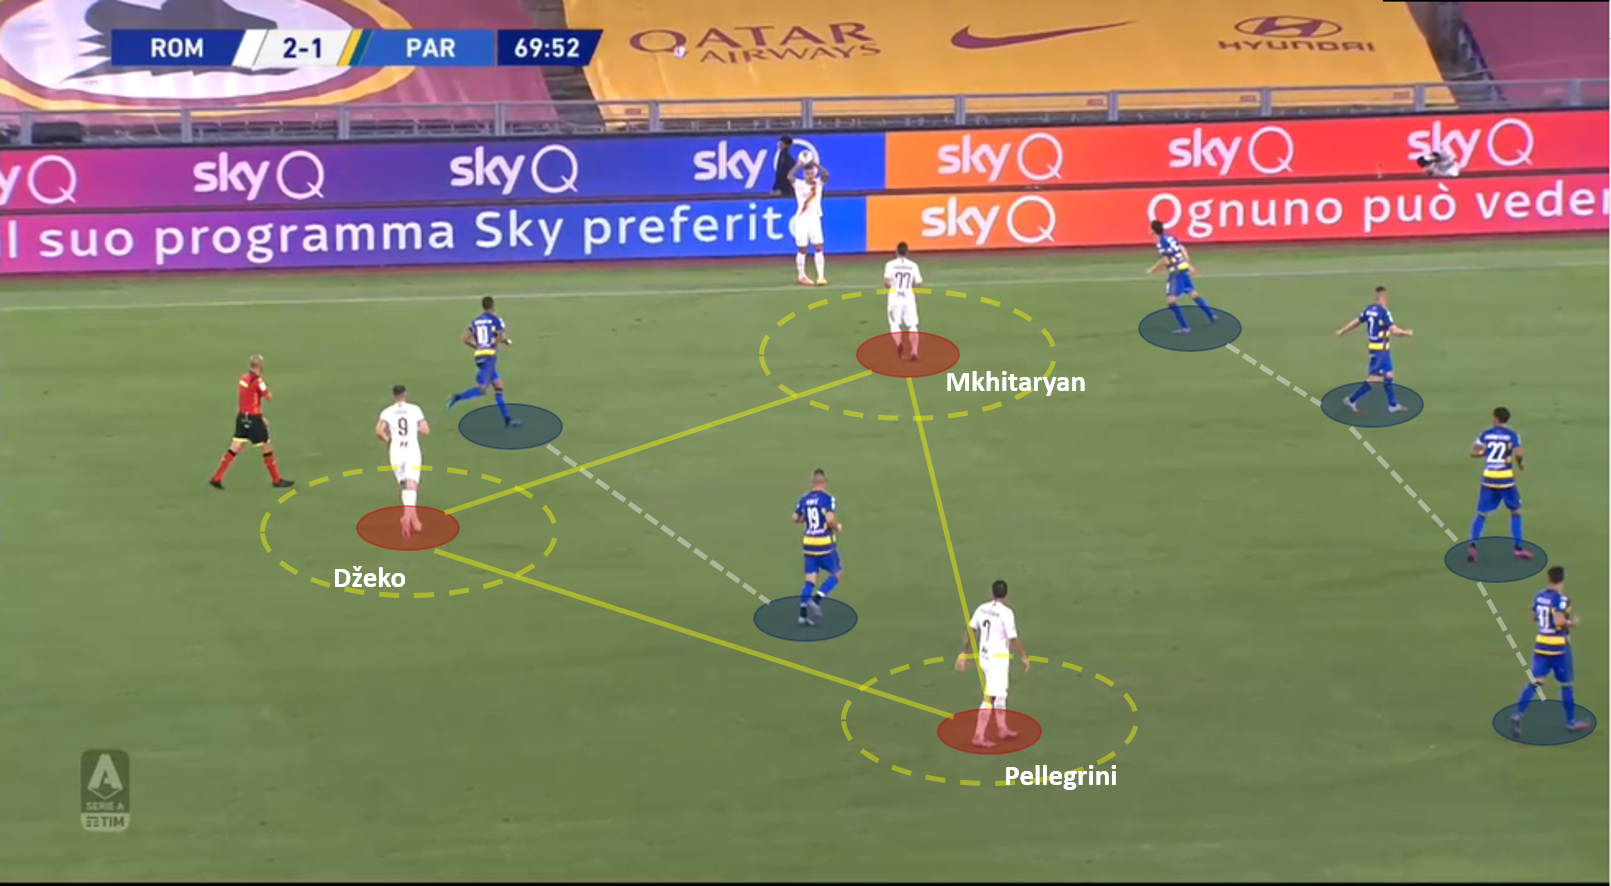 Serie A 2019/20: Roma vs Parma – tactical analysis tactics